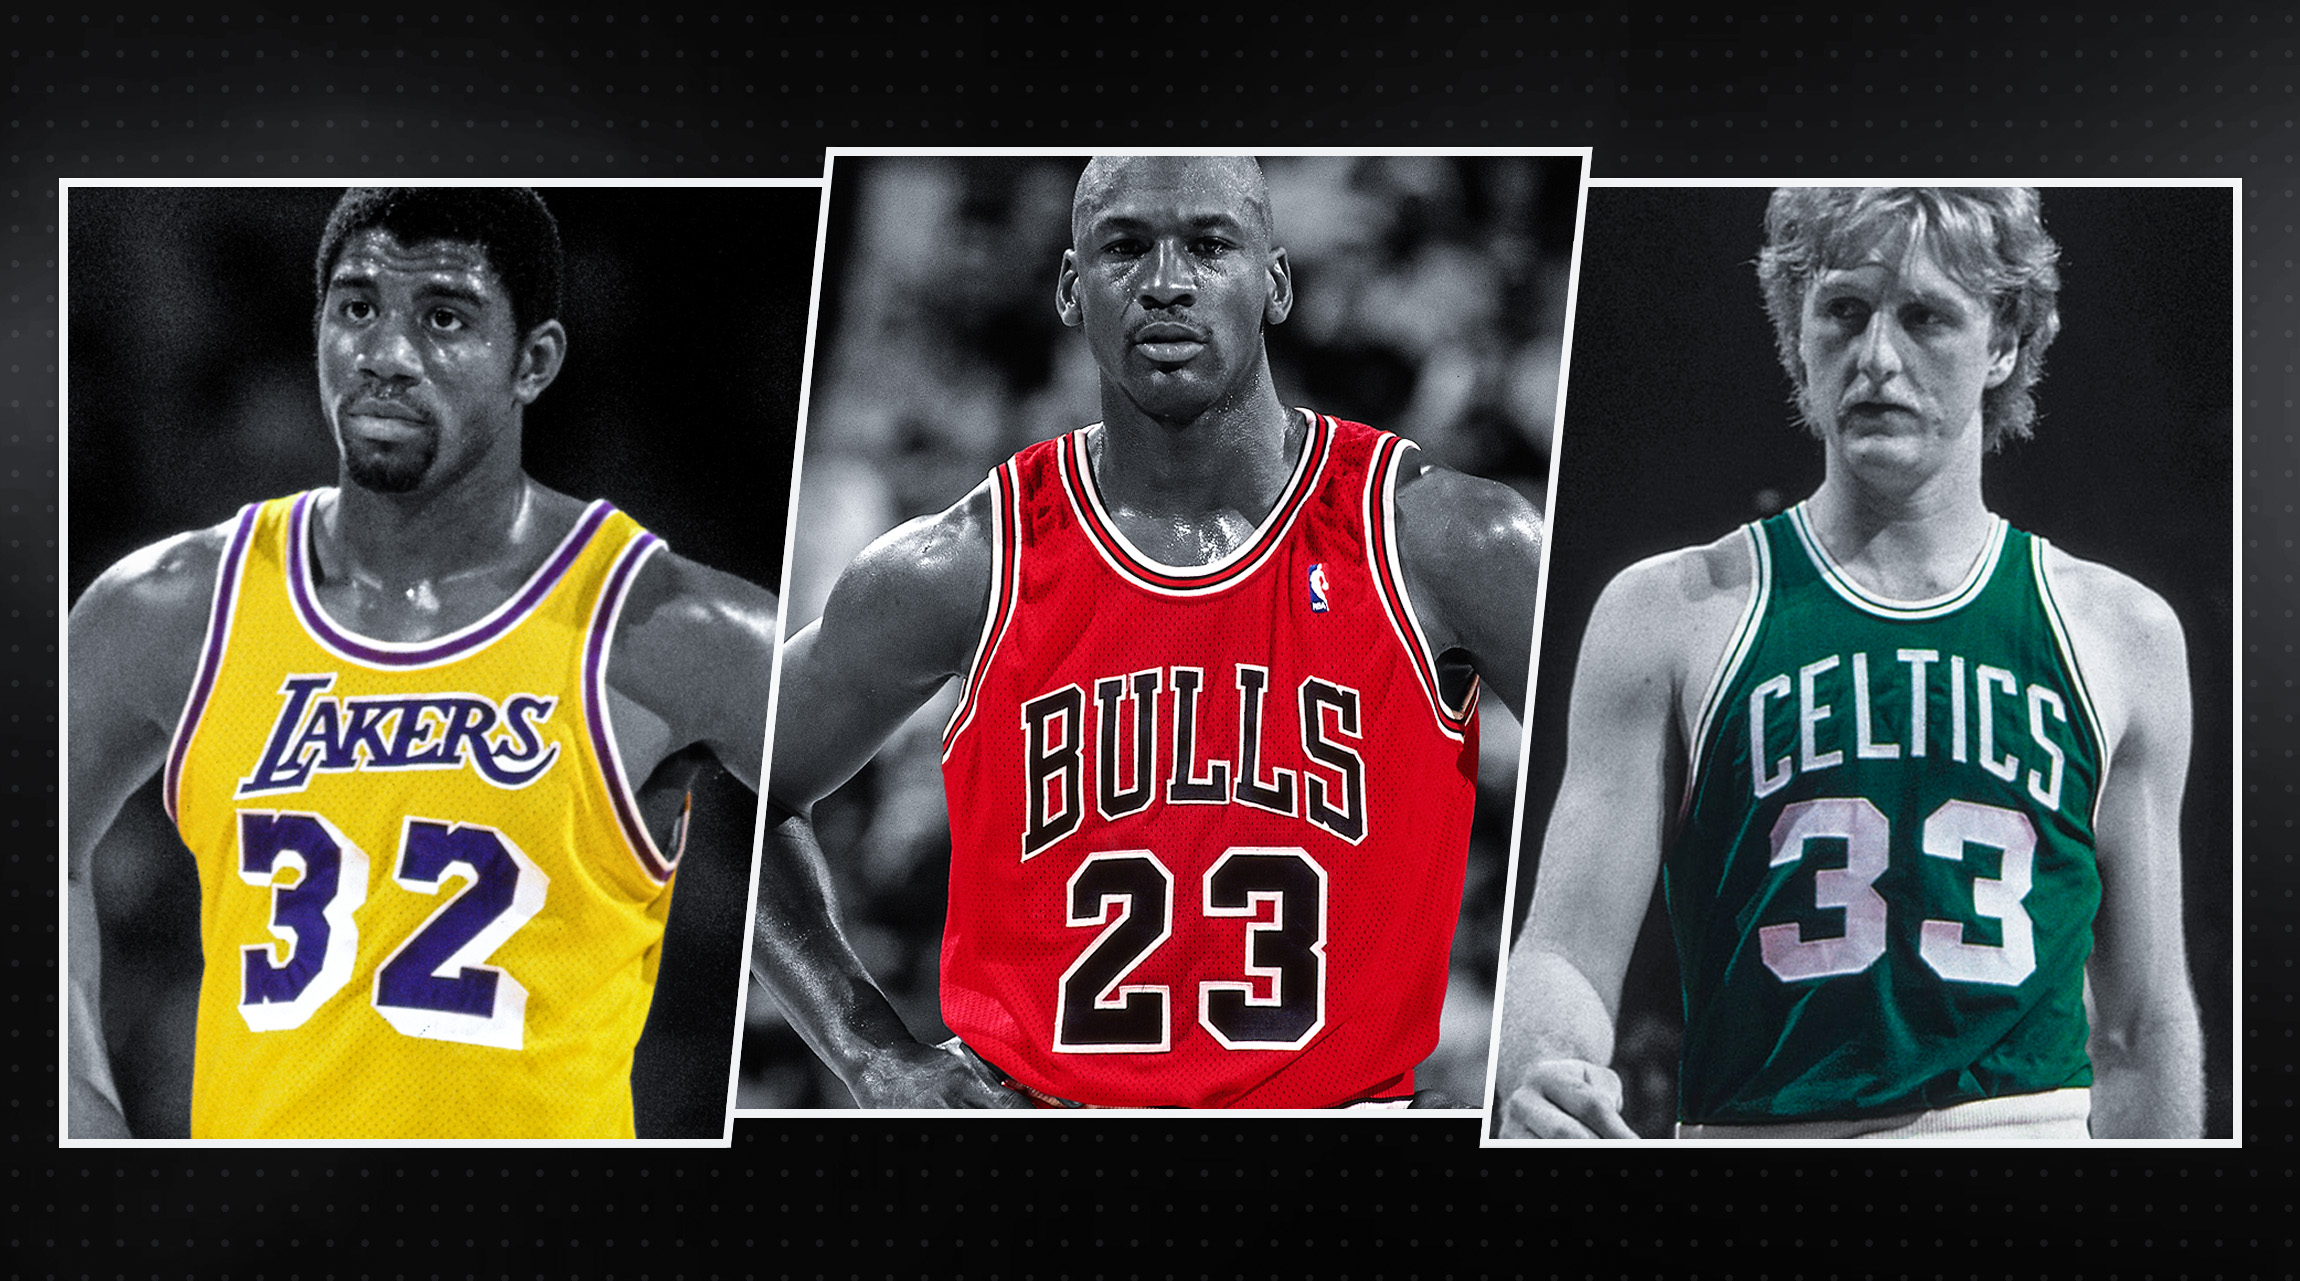 c4856a169c5 NBA jerseys: Ranking the 30 greatest in history | SI.com